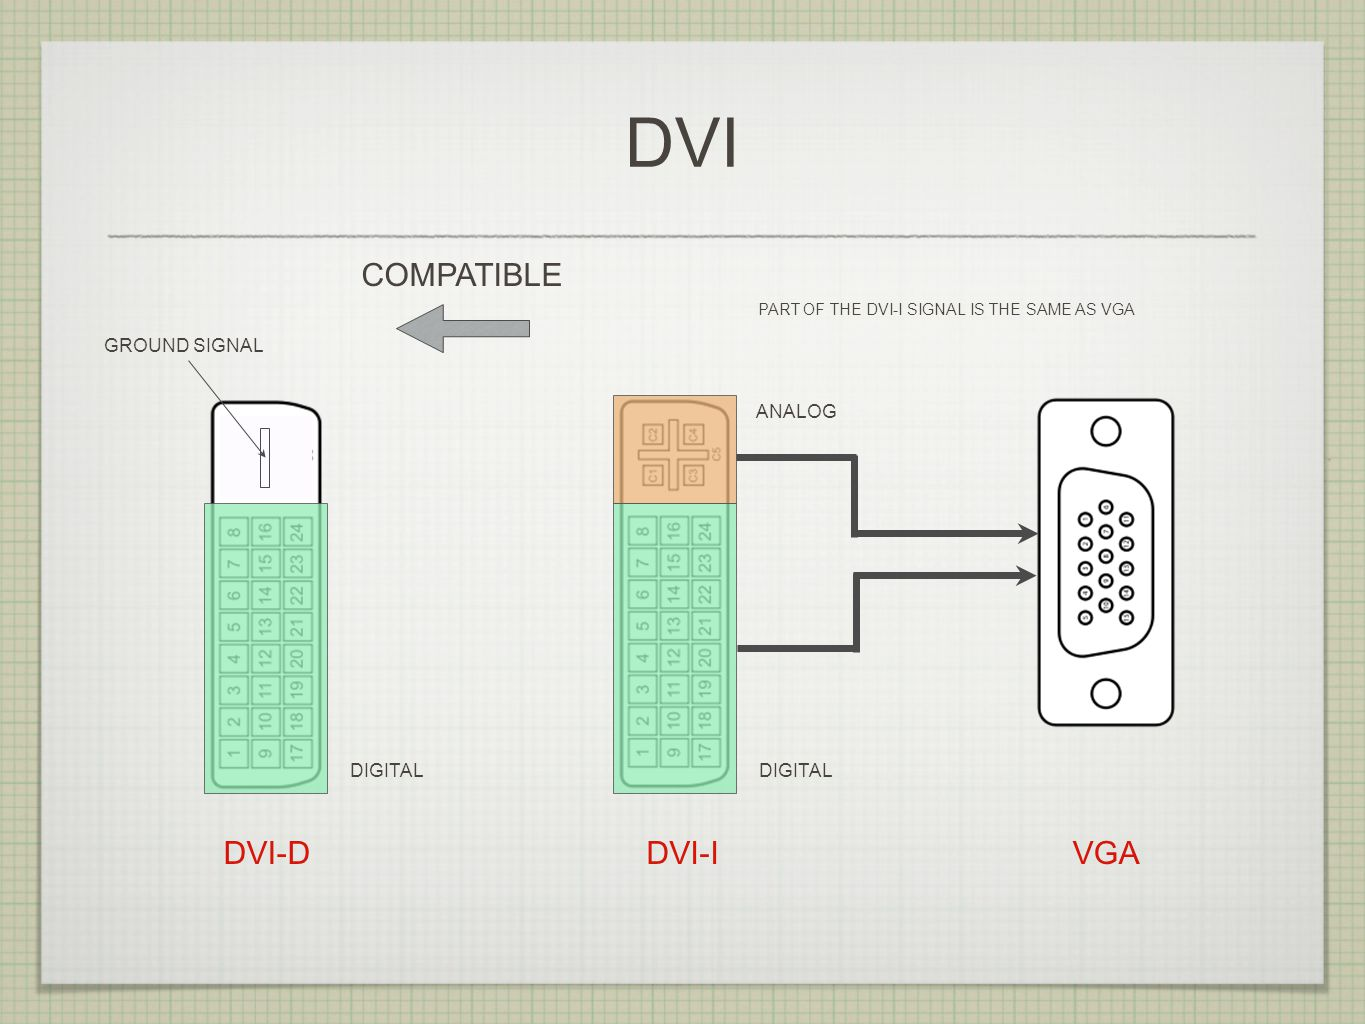 DVI ANALOG DIGITAL DVI-IDVI-D DIGITAL VGA COMPATIBLE PART OF THE DVI-I SIGNAL IS THE SAME AS VGA GROUND SIGNAL